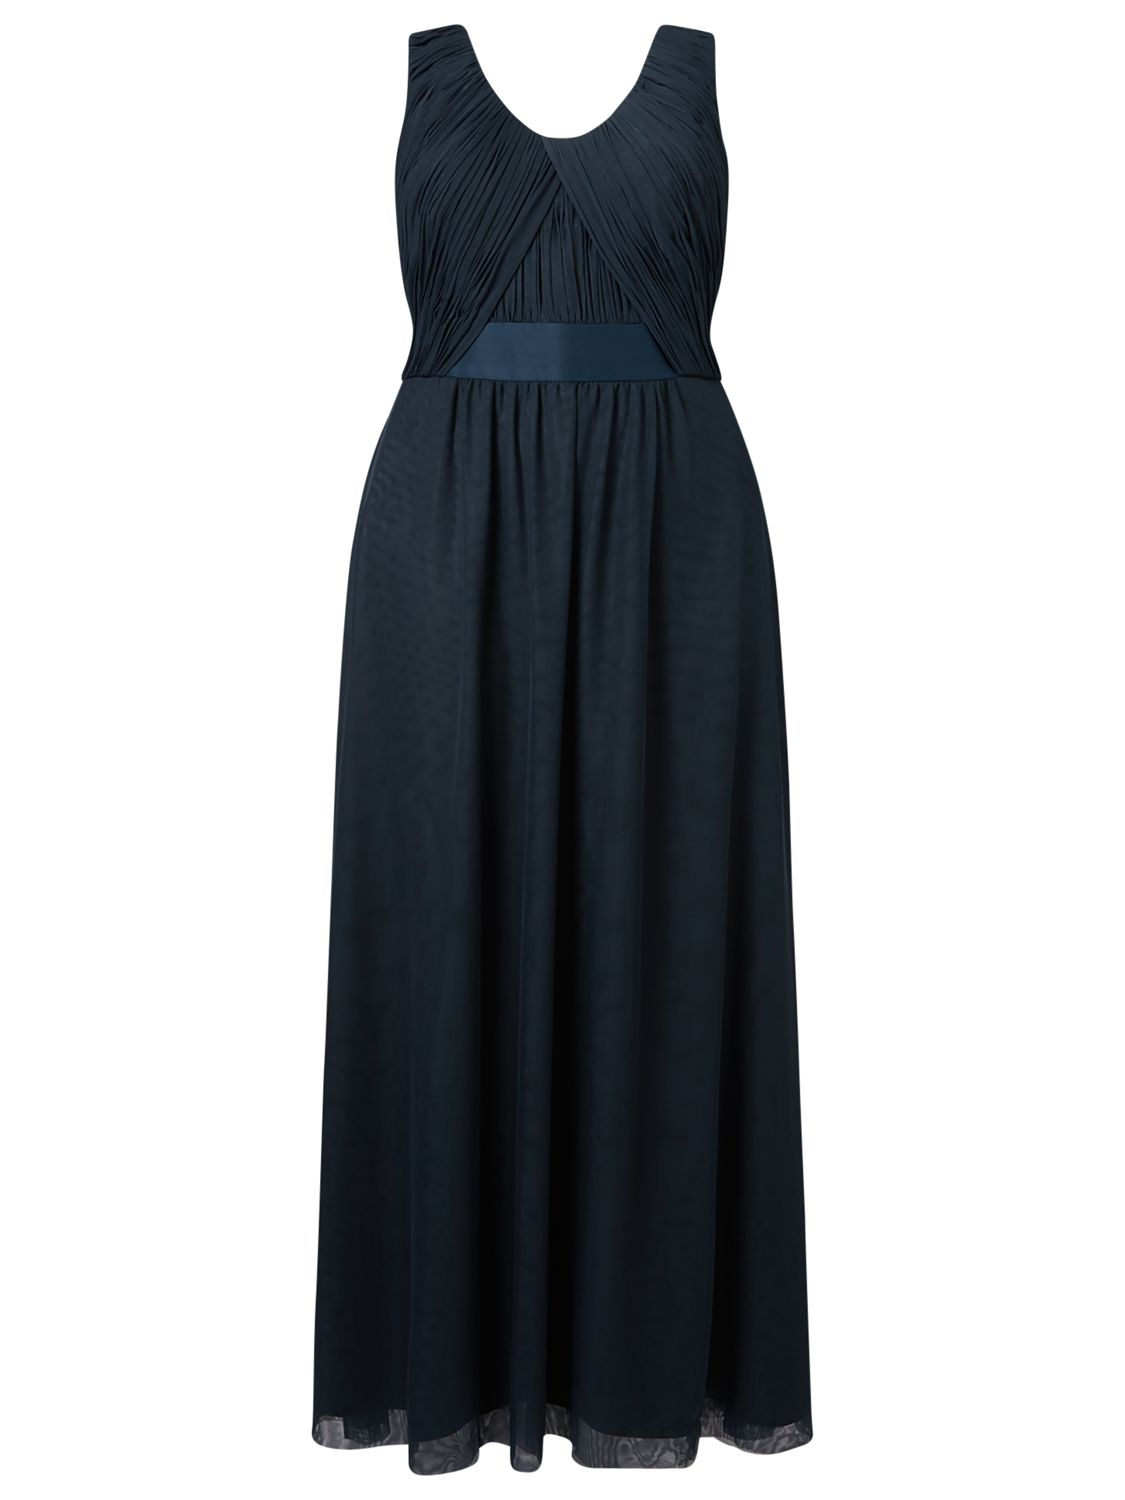 Studio 8 Studio 8 Luna Maxi Dress, Navy